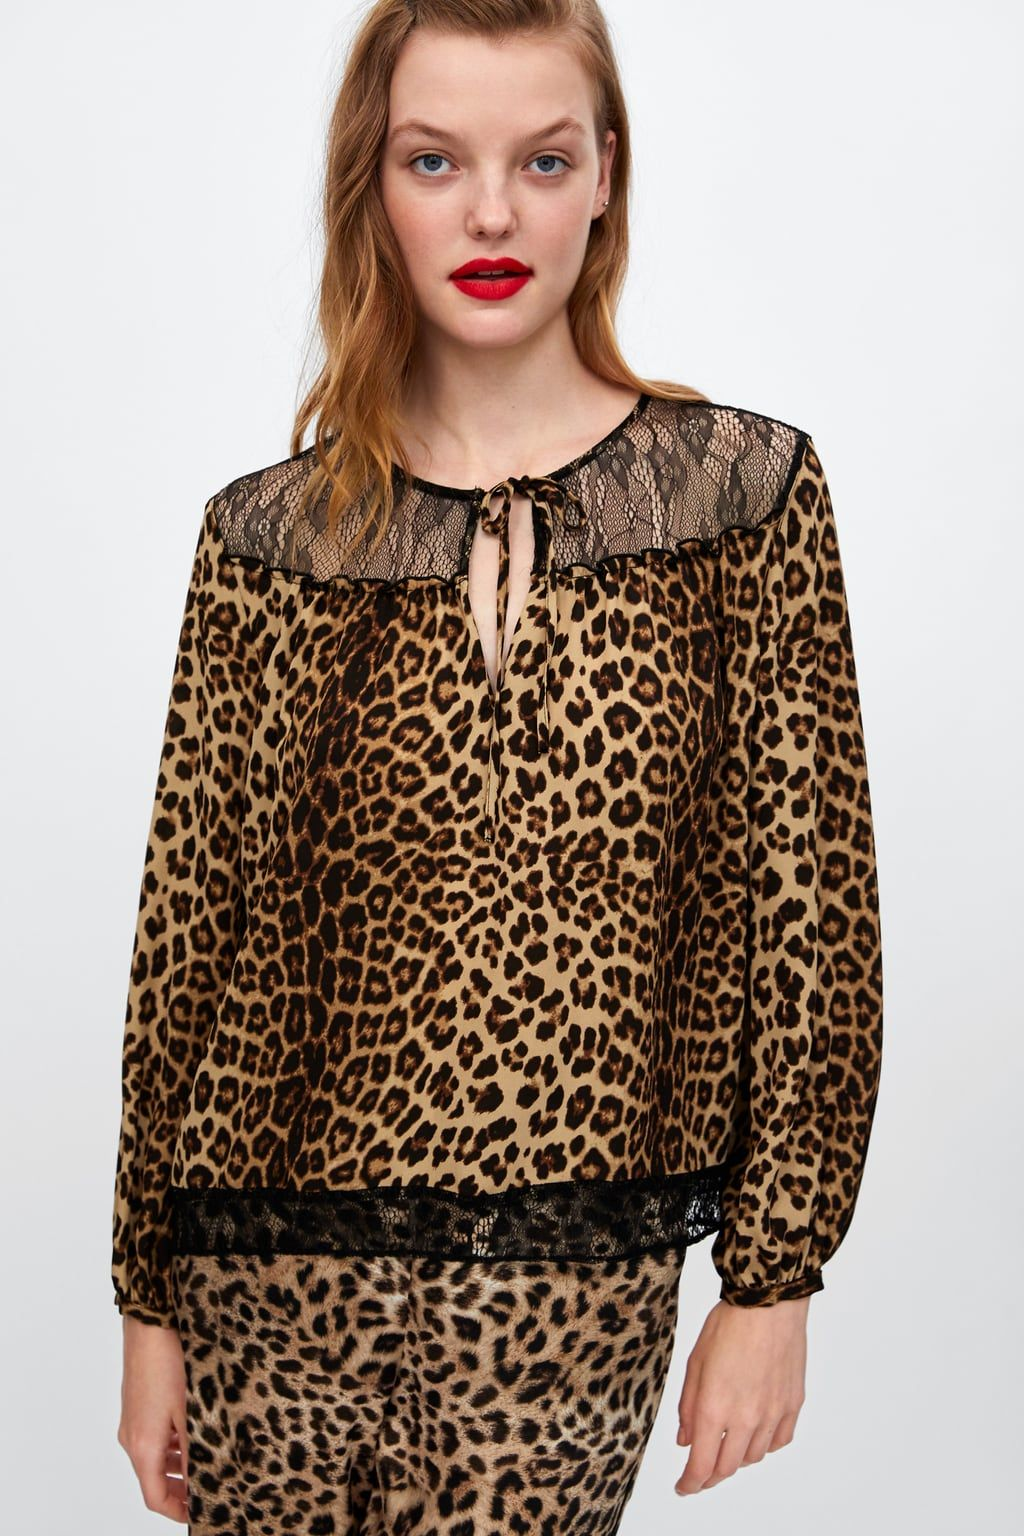 965d74141670d Image 3 of CONTRASTING ANIMAL PRINT TOP from Zara